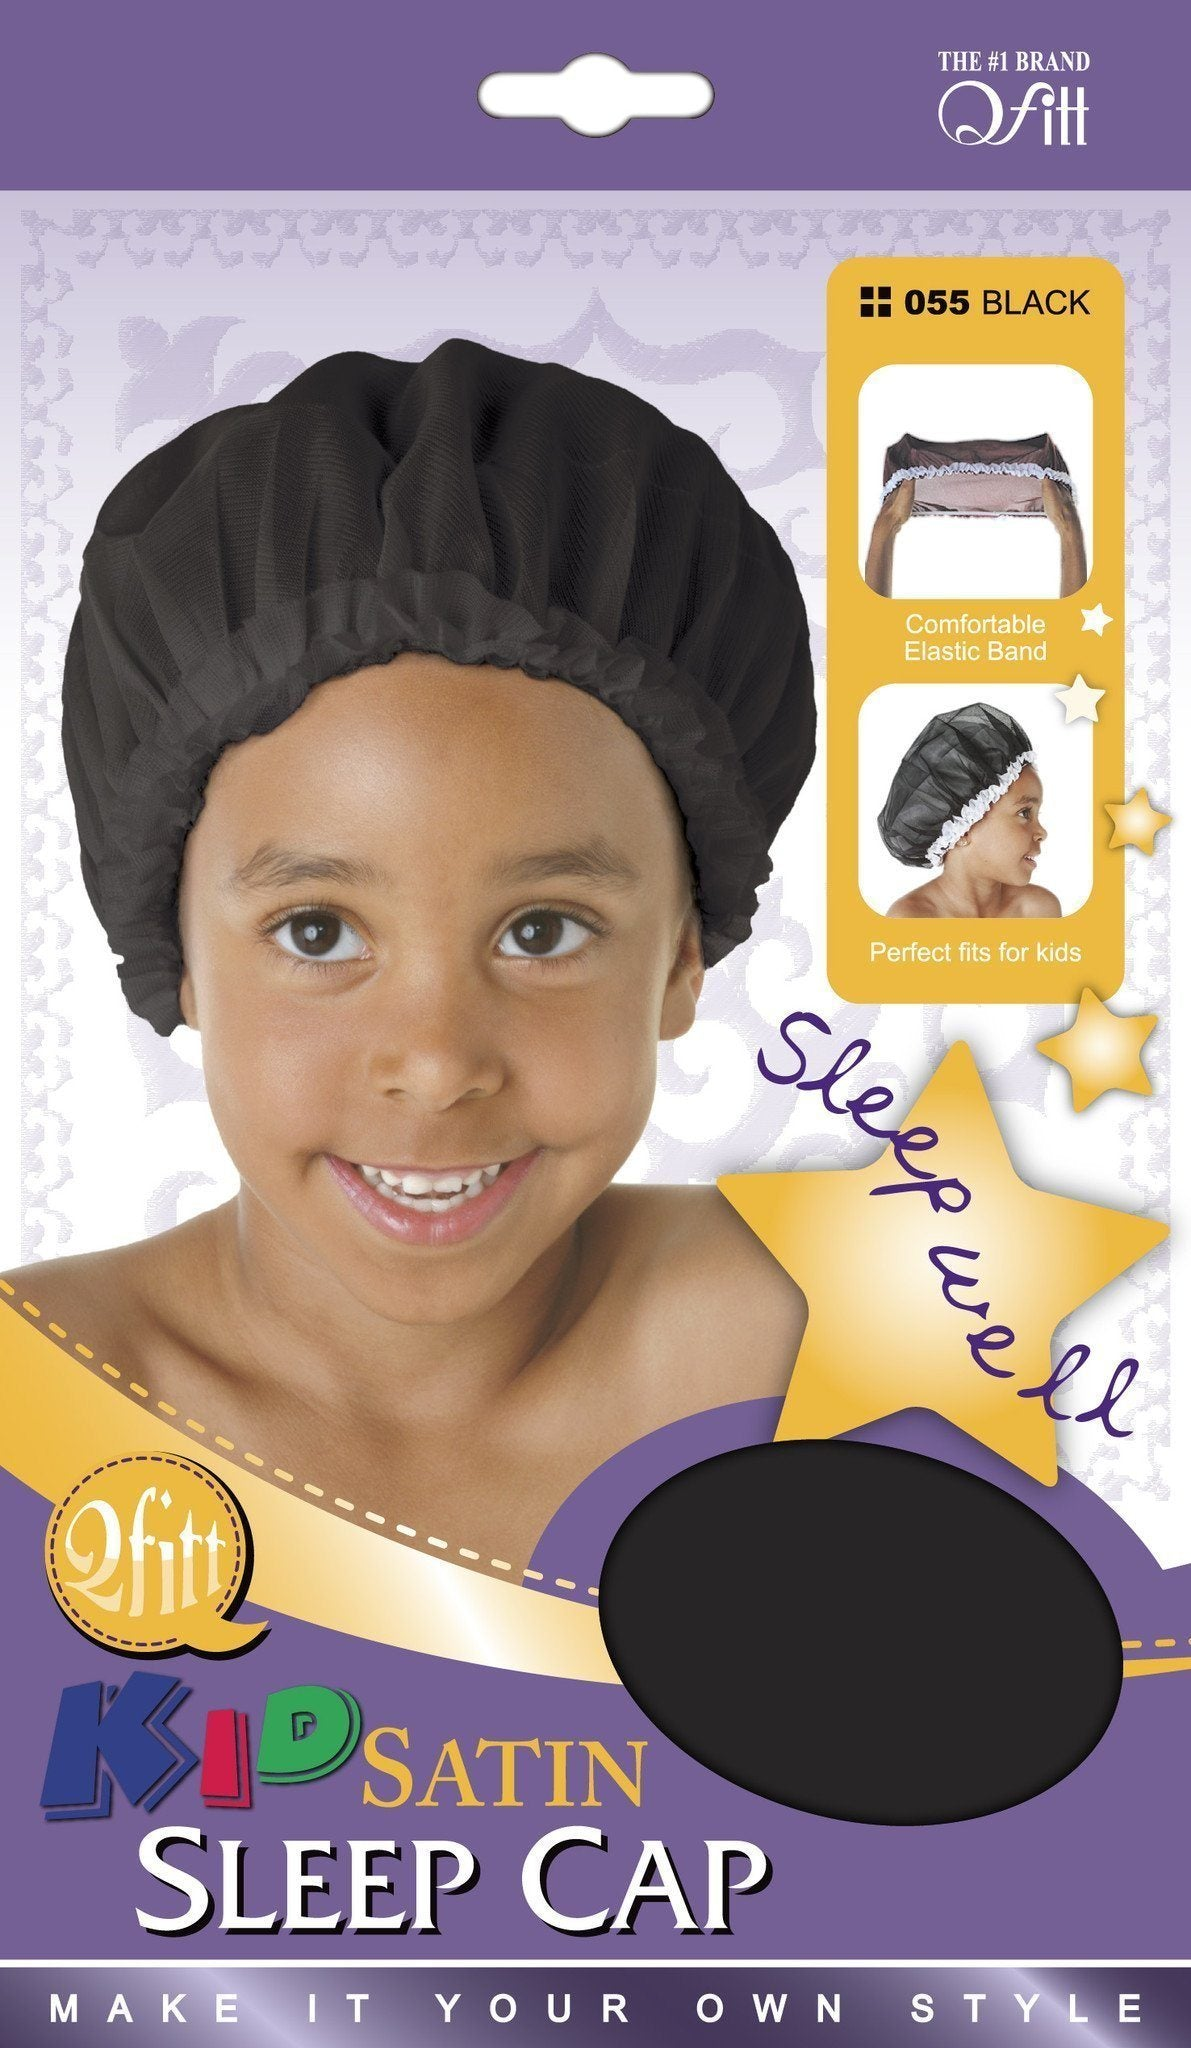 #55 Kid Satin Sleep Cap / Black (Dz)